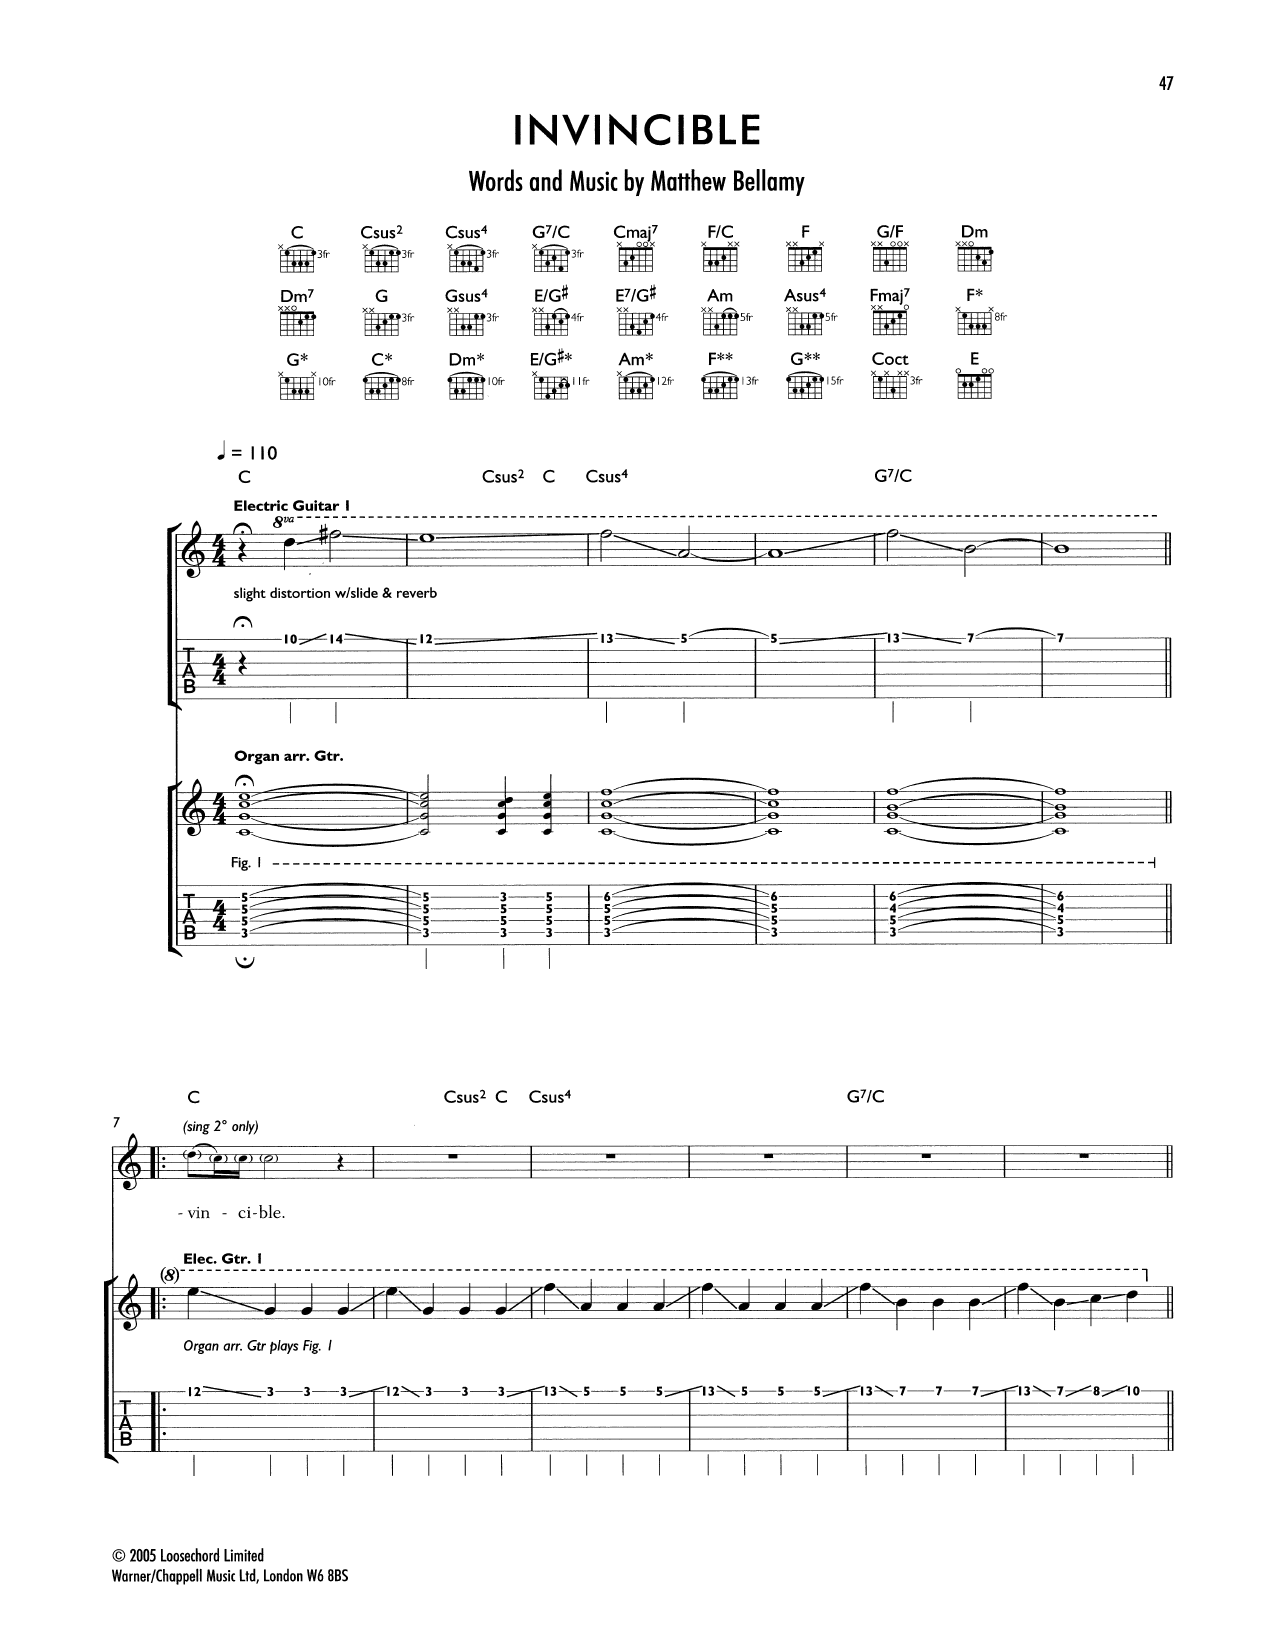 Sheet Music Digital Files To Print Licensed Muse Digital Sheet Music